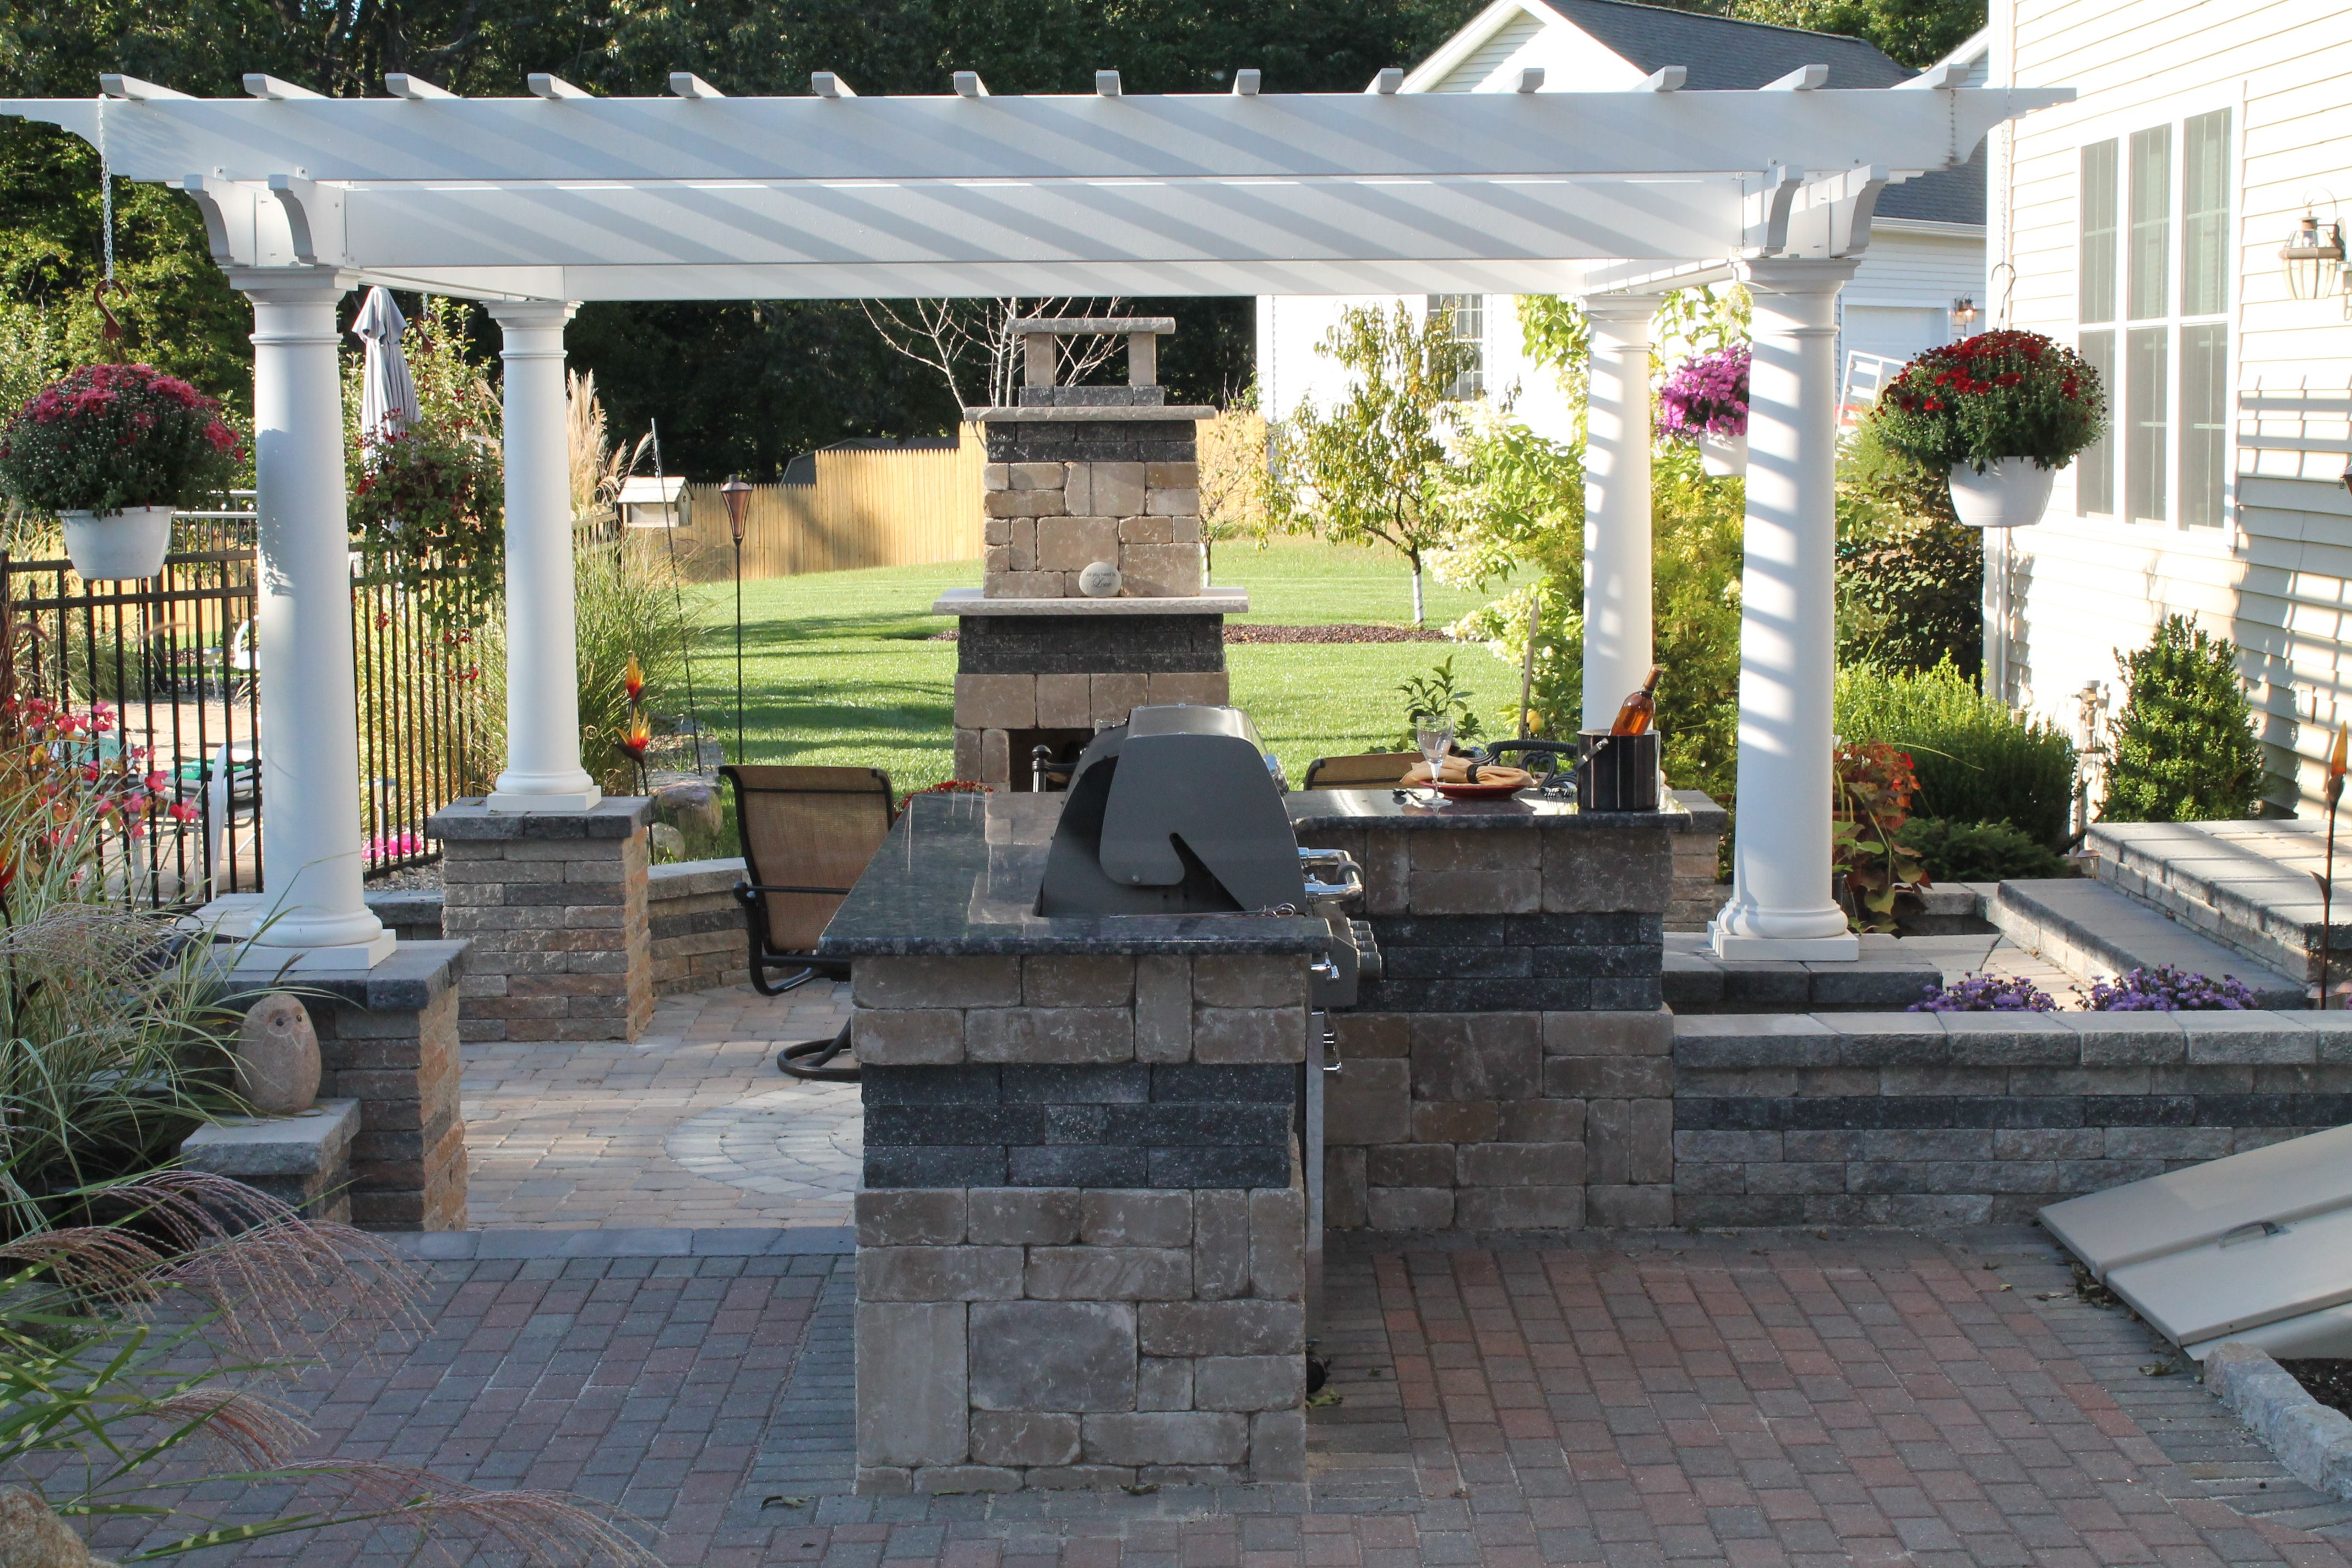 A Pergola Built On Columns Frames This Outdoor Fireplace With Outdoor Kitchen On A Multi Level Paver Patio By Bahler Brothers Pergola Patio Patio Design